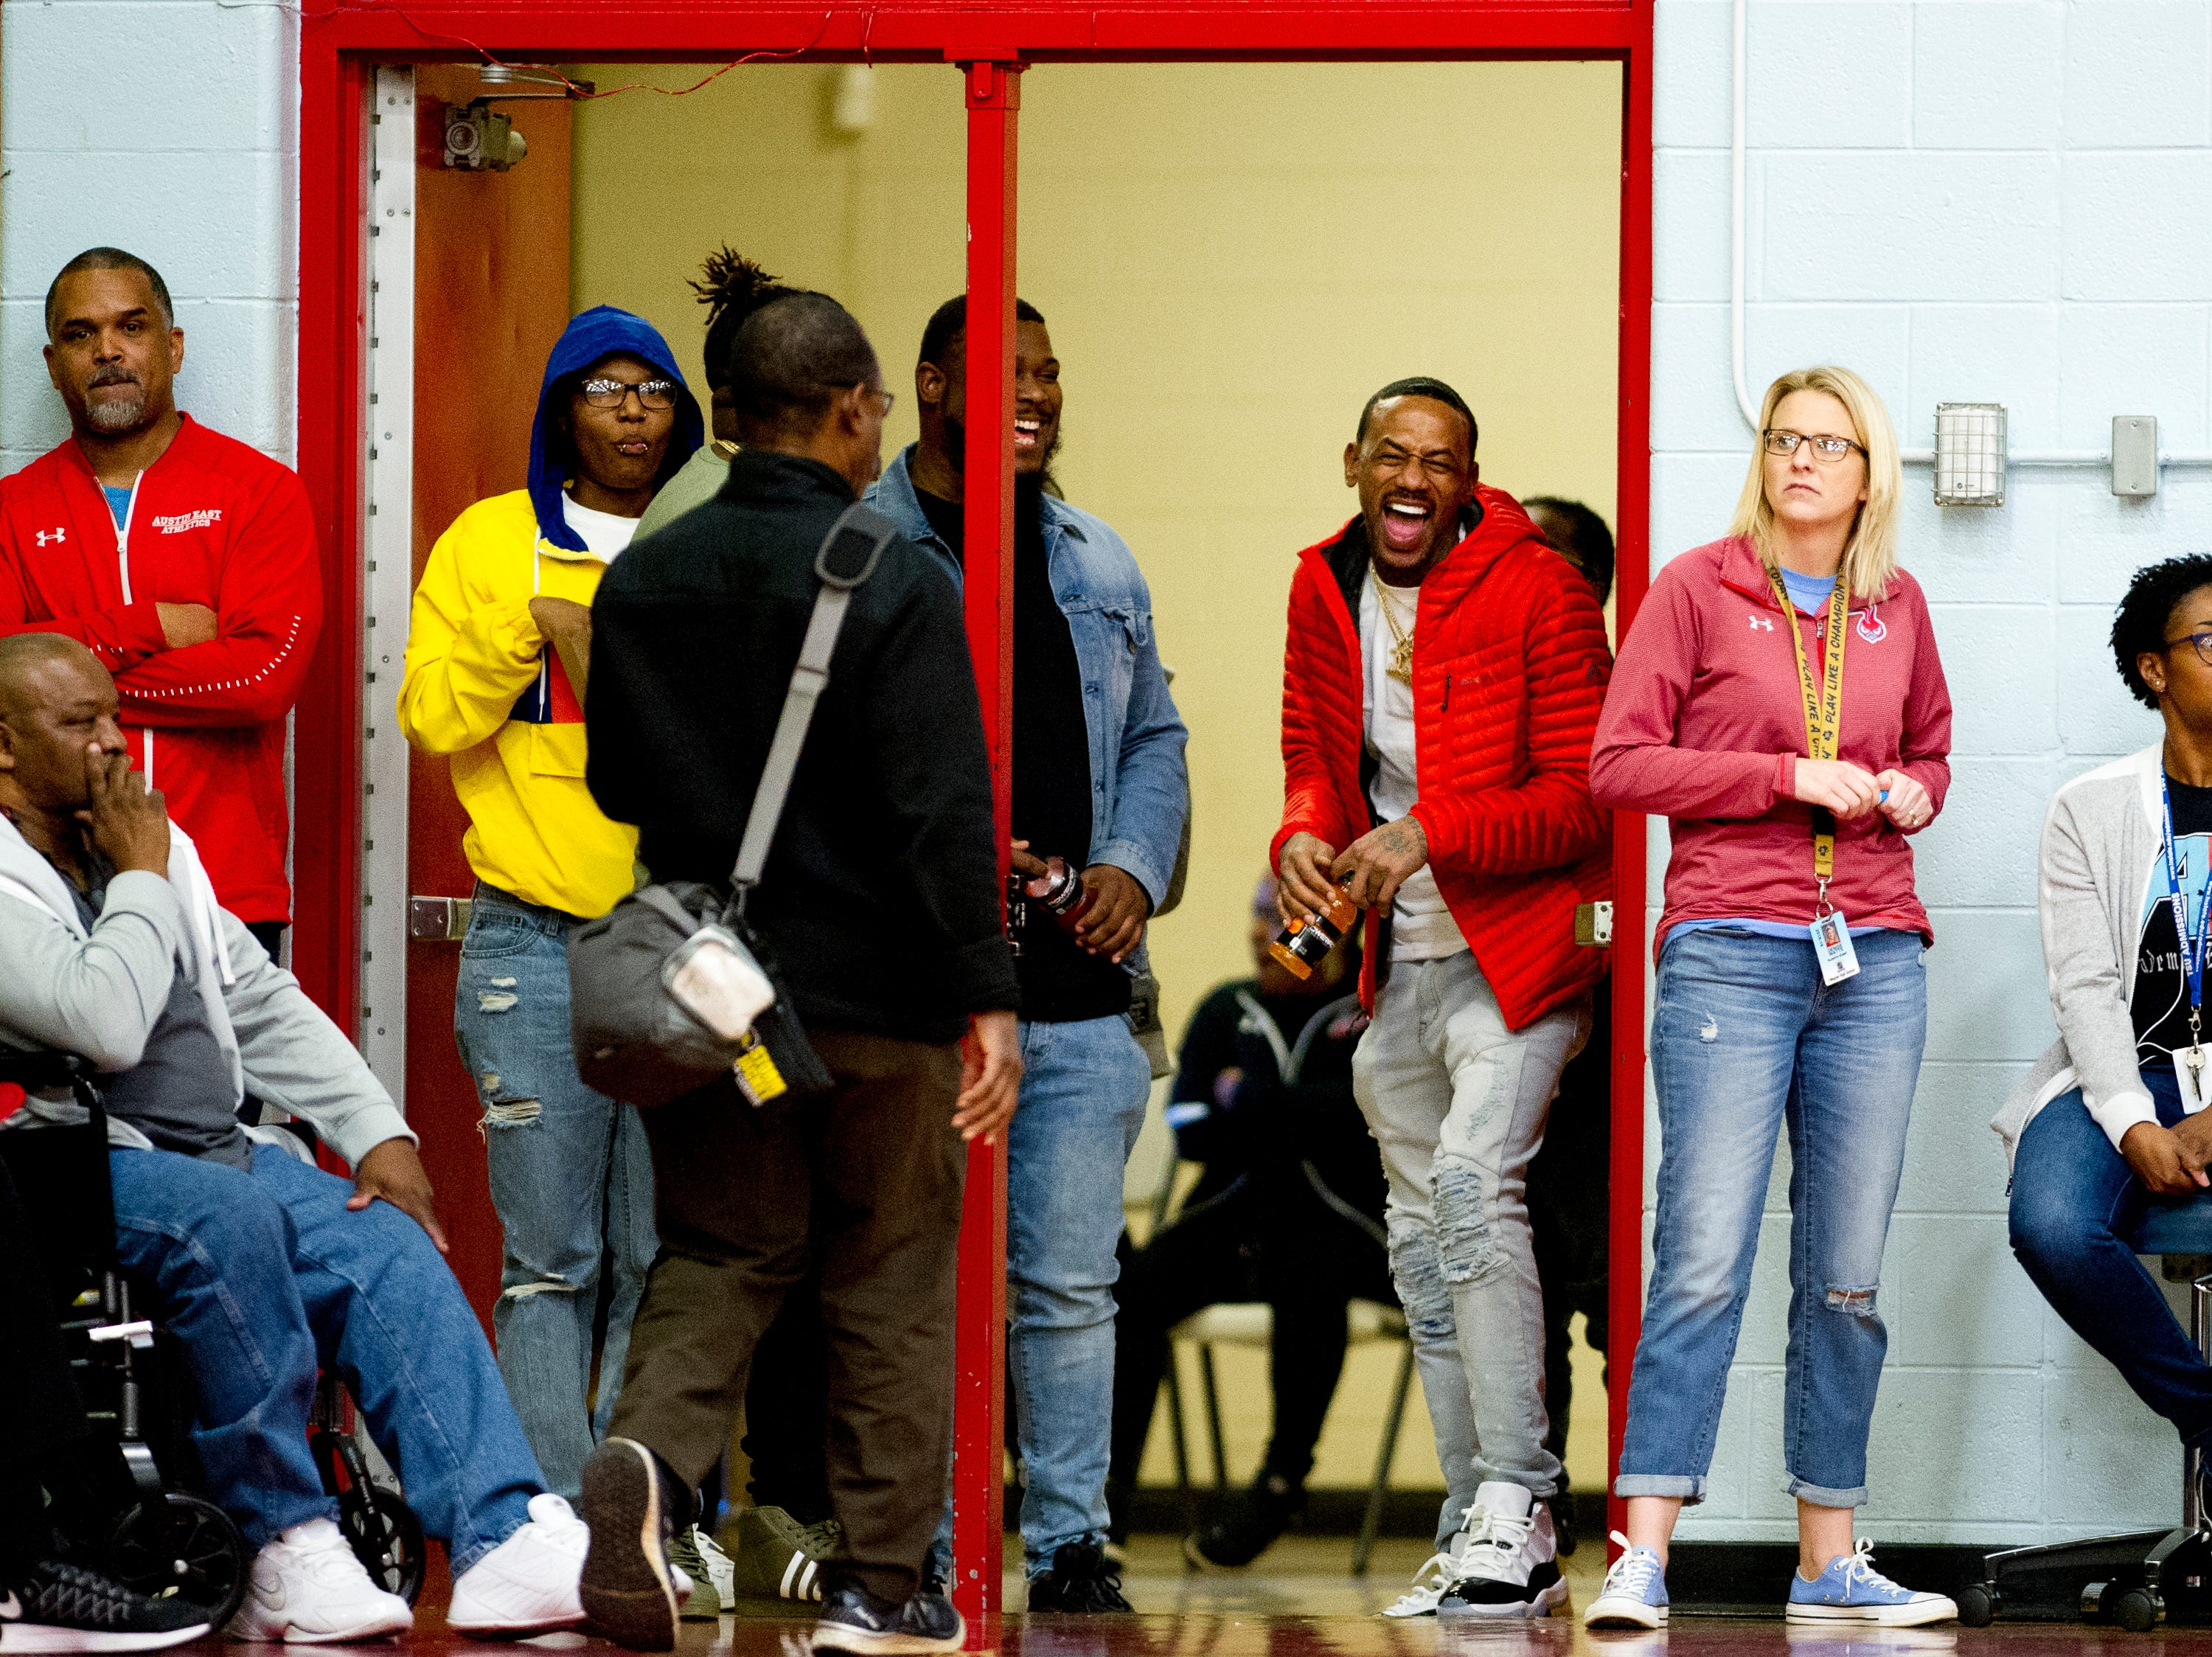 Fans laugh in the doorway during a game between Austin-East and Fulton at Austin-East High School in Knoxville, Tennessee on Saturday, January 5, 2019.